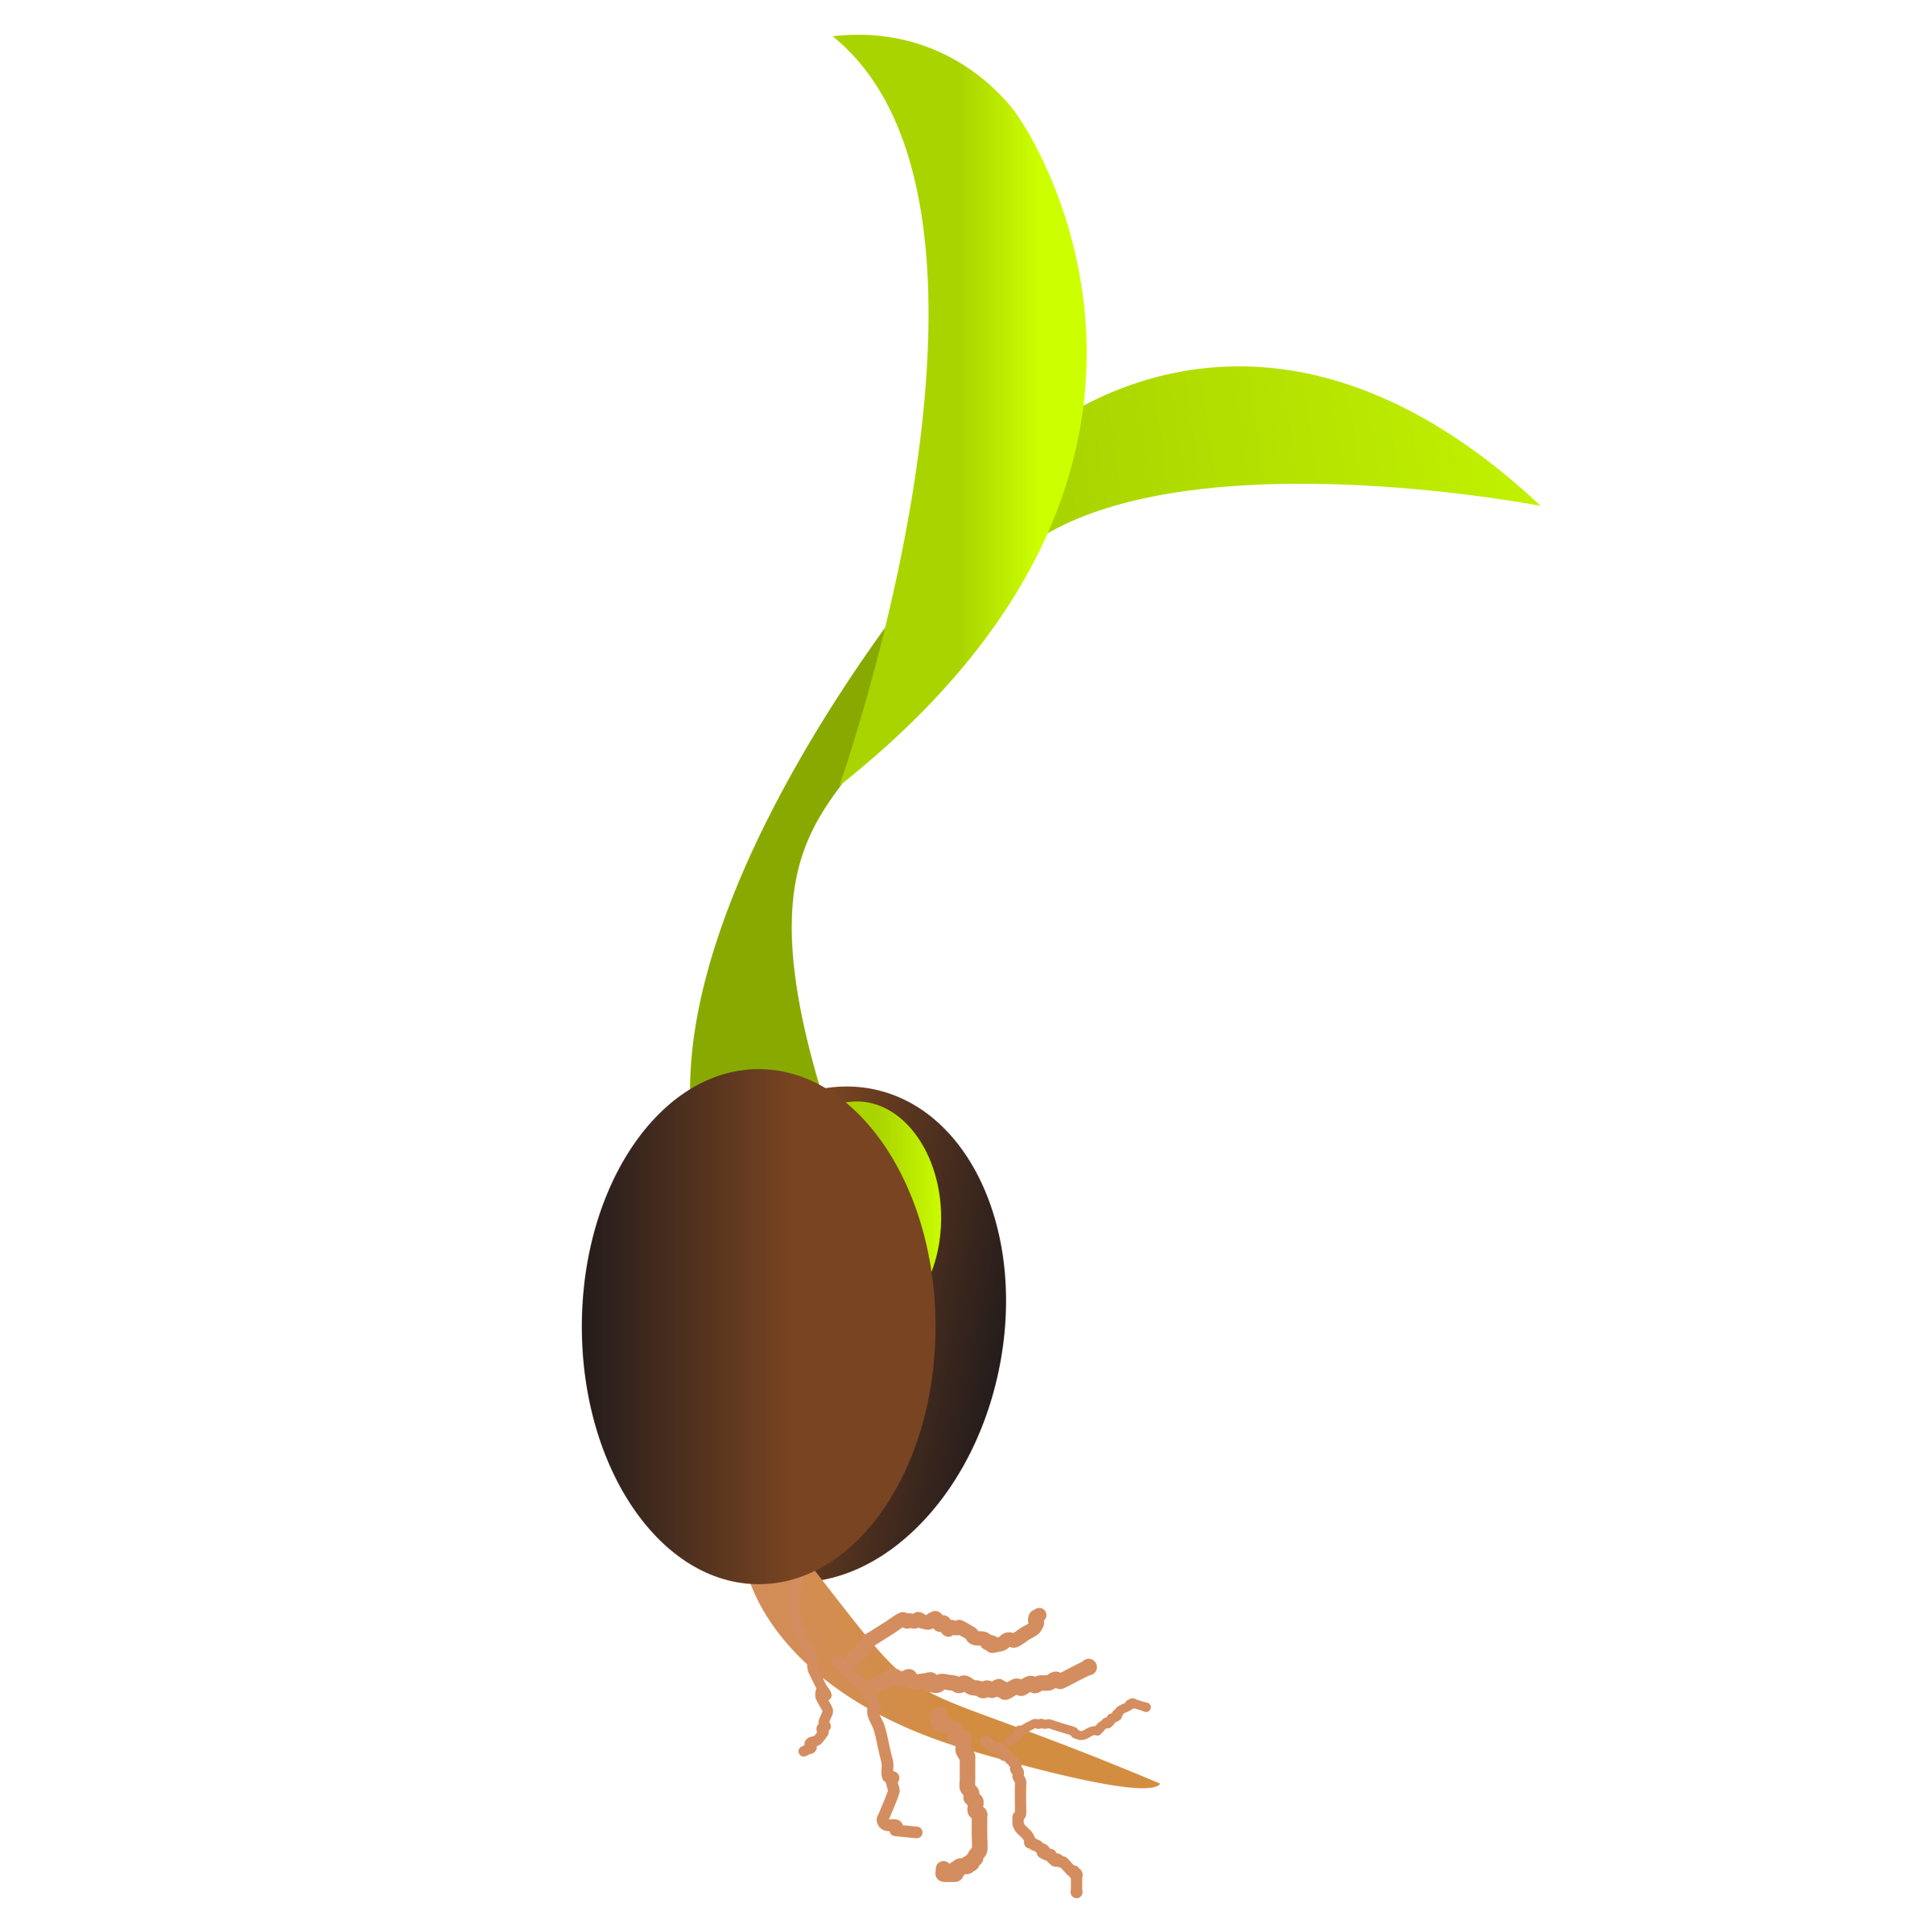 New life a germinating. Gardening clipart plant seedling